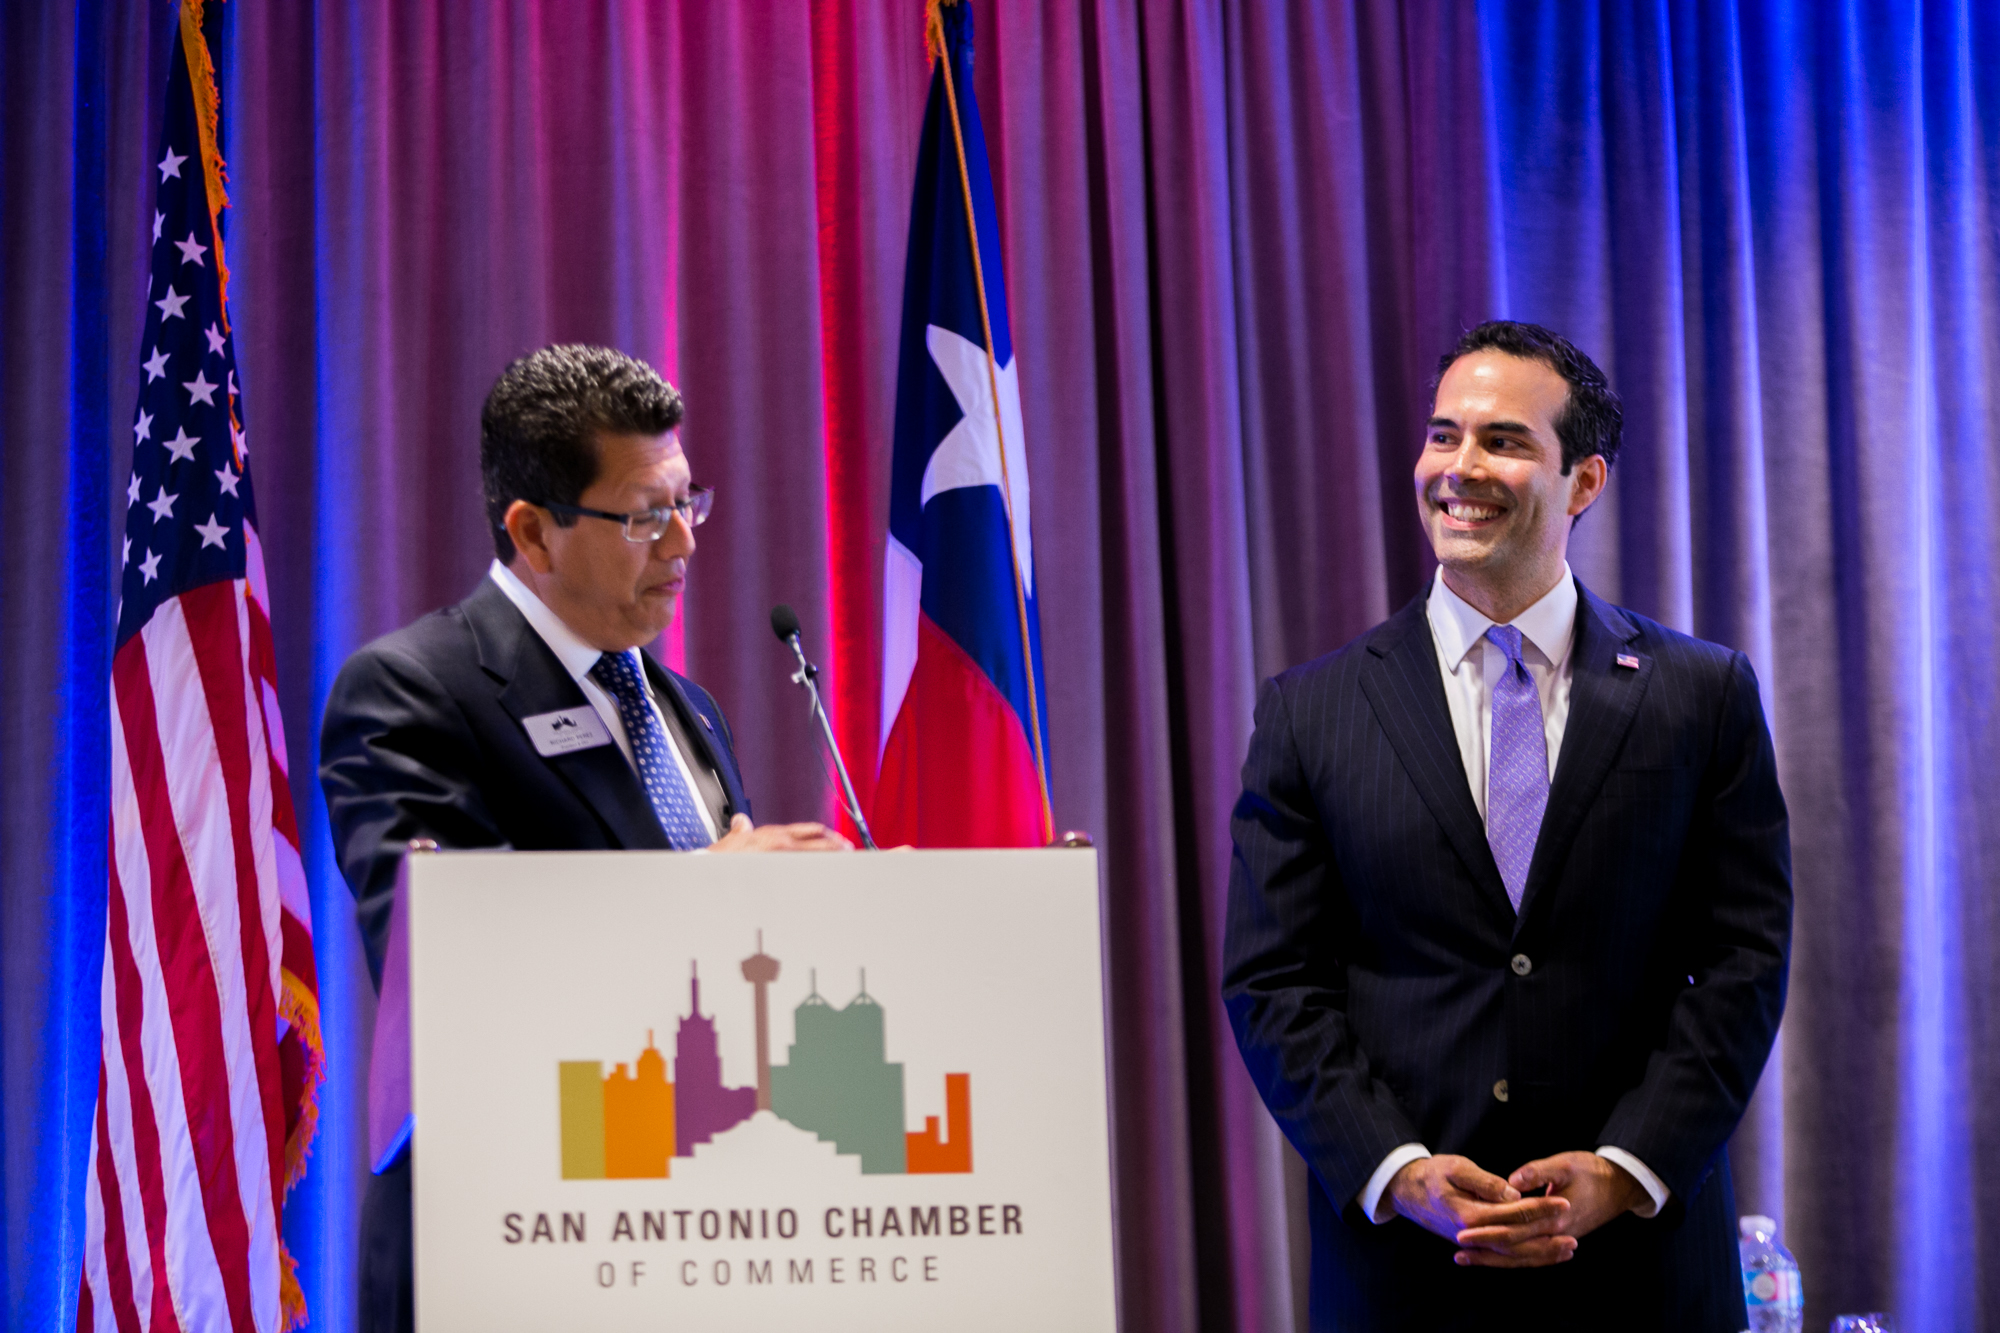 President and CEO of the San Antonio Chamber of Commerce Richard Perez thanks Texas Land Commissioner George P. Bush for his help in the preservation and redevelopment of The Alamo. Photo by Kathryn Boyd-Batstone